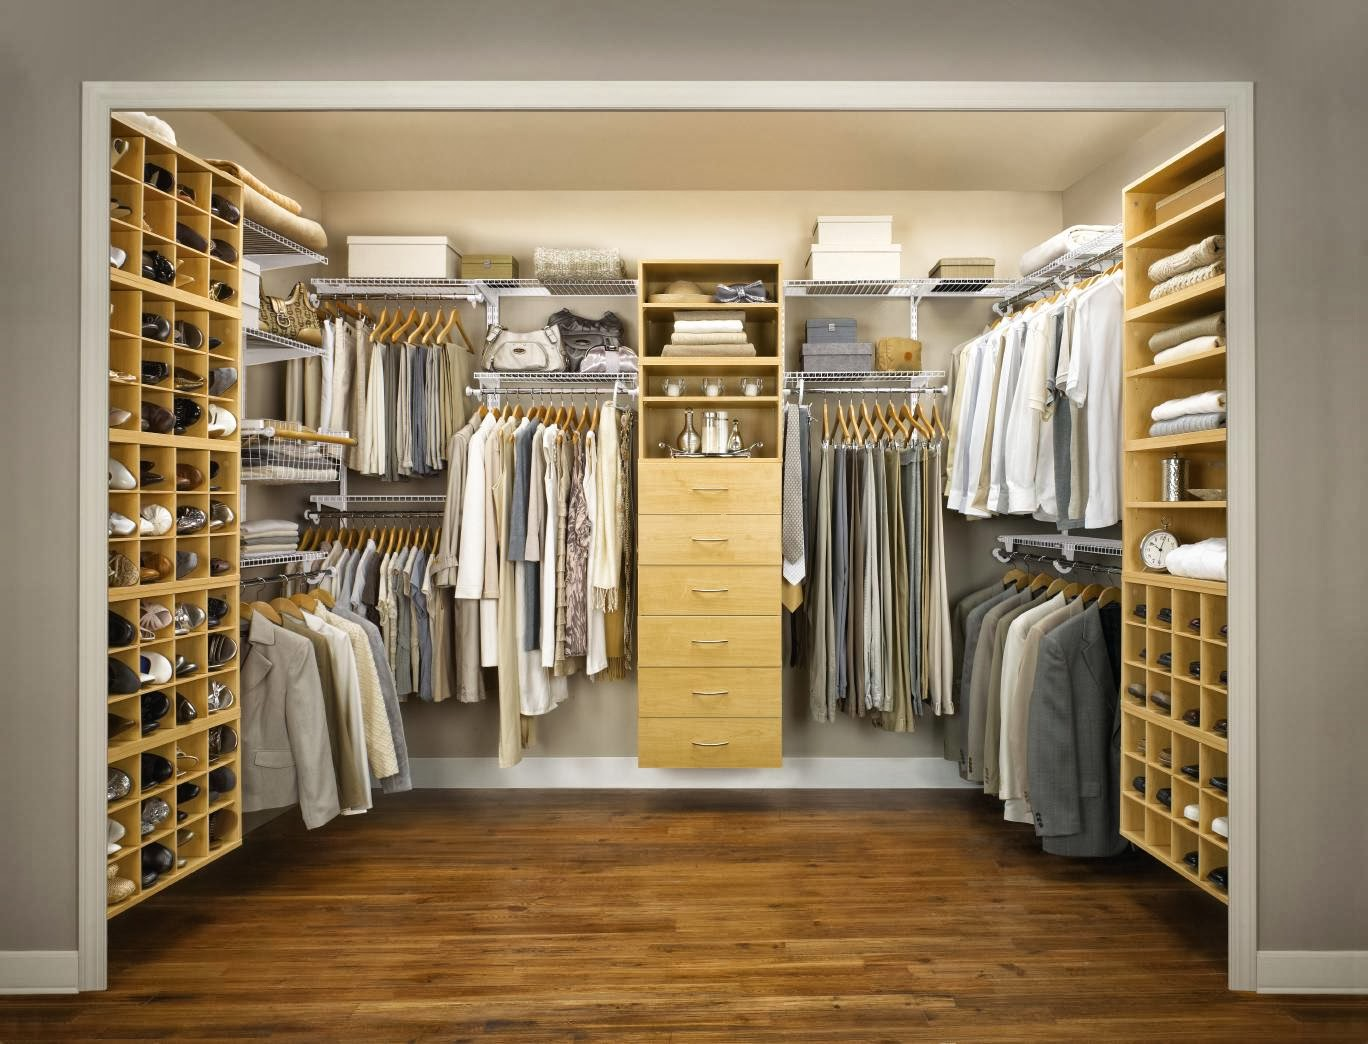 Bedroom closet organization ideas Photo - 1